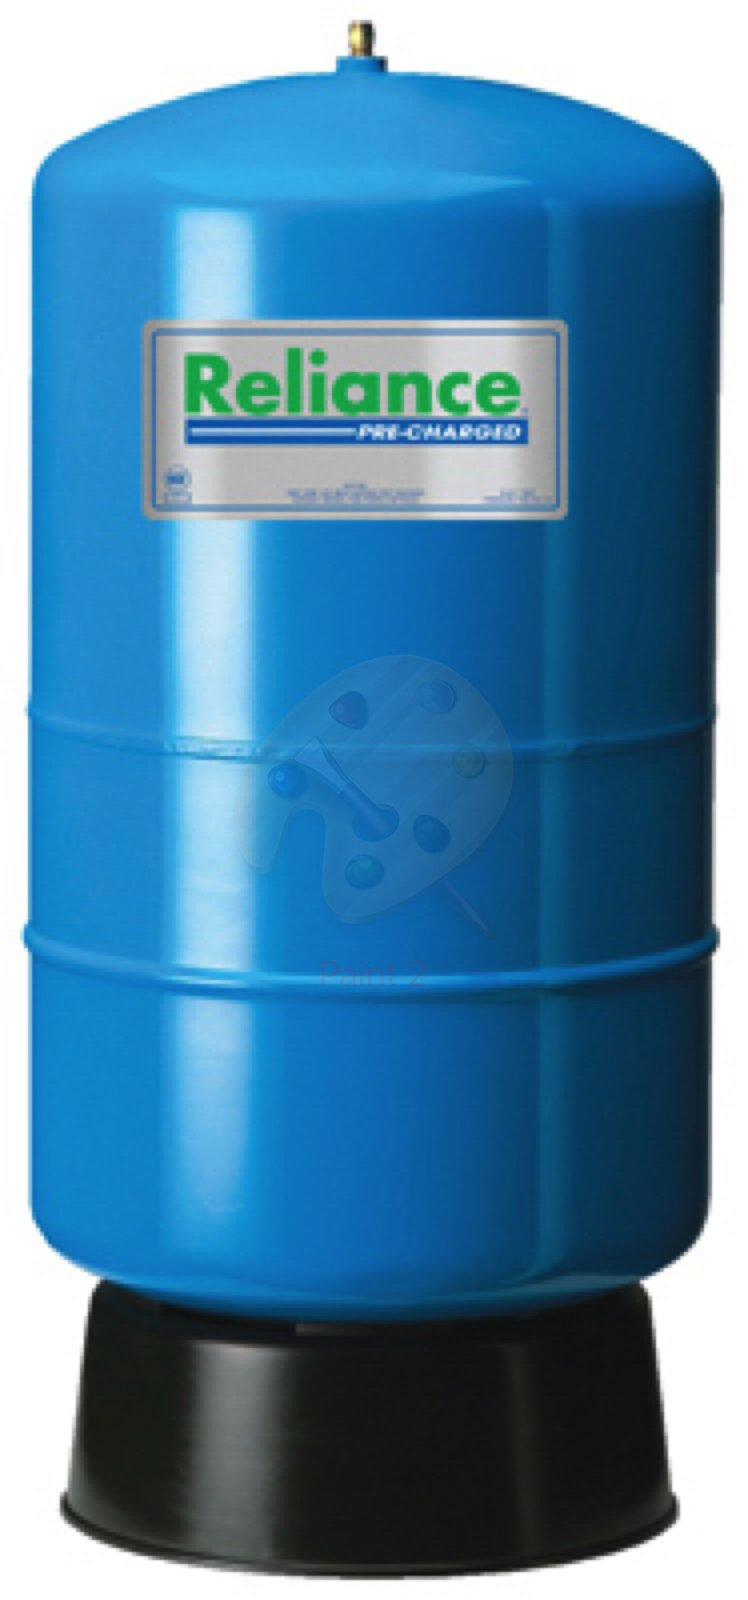 Reliance Water Heater Co. PMD-20 20 Gallon Capacity, Vertical, Pressure Pump Tank by Reliance Water Heater